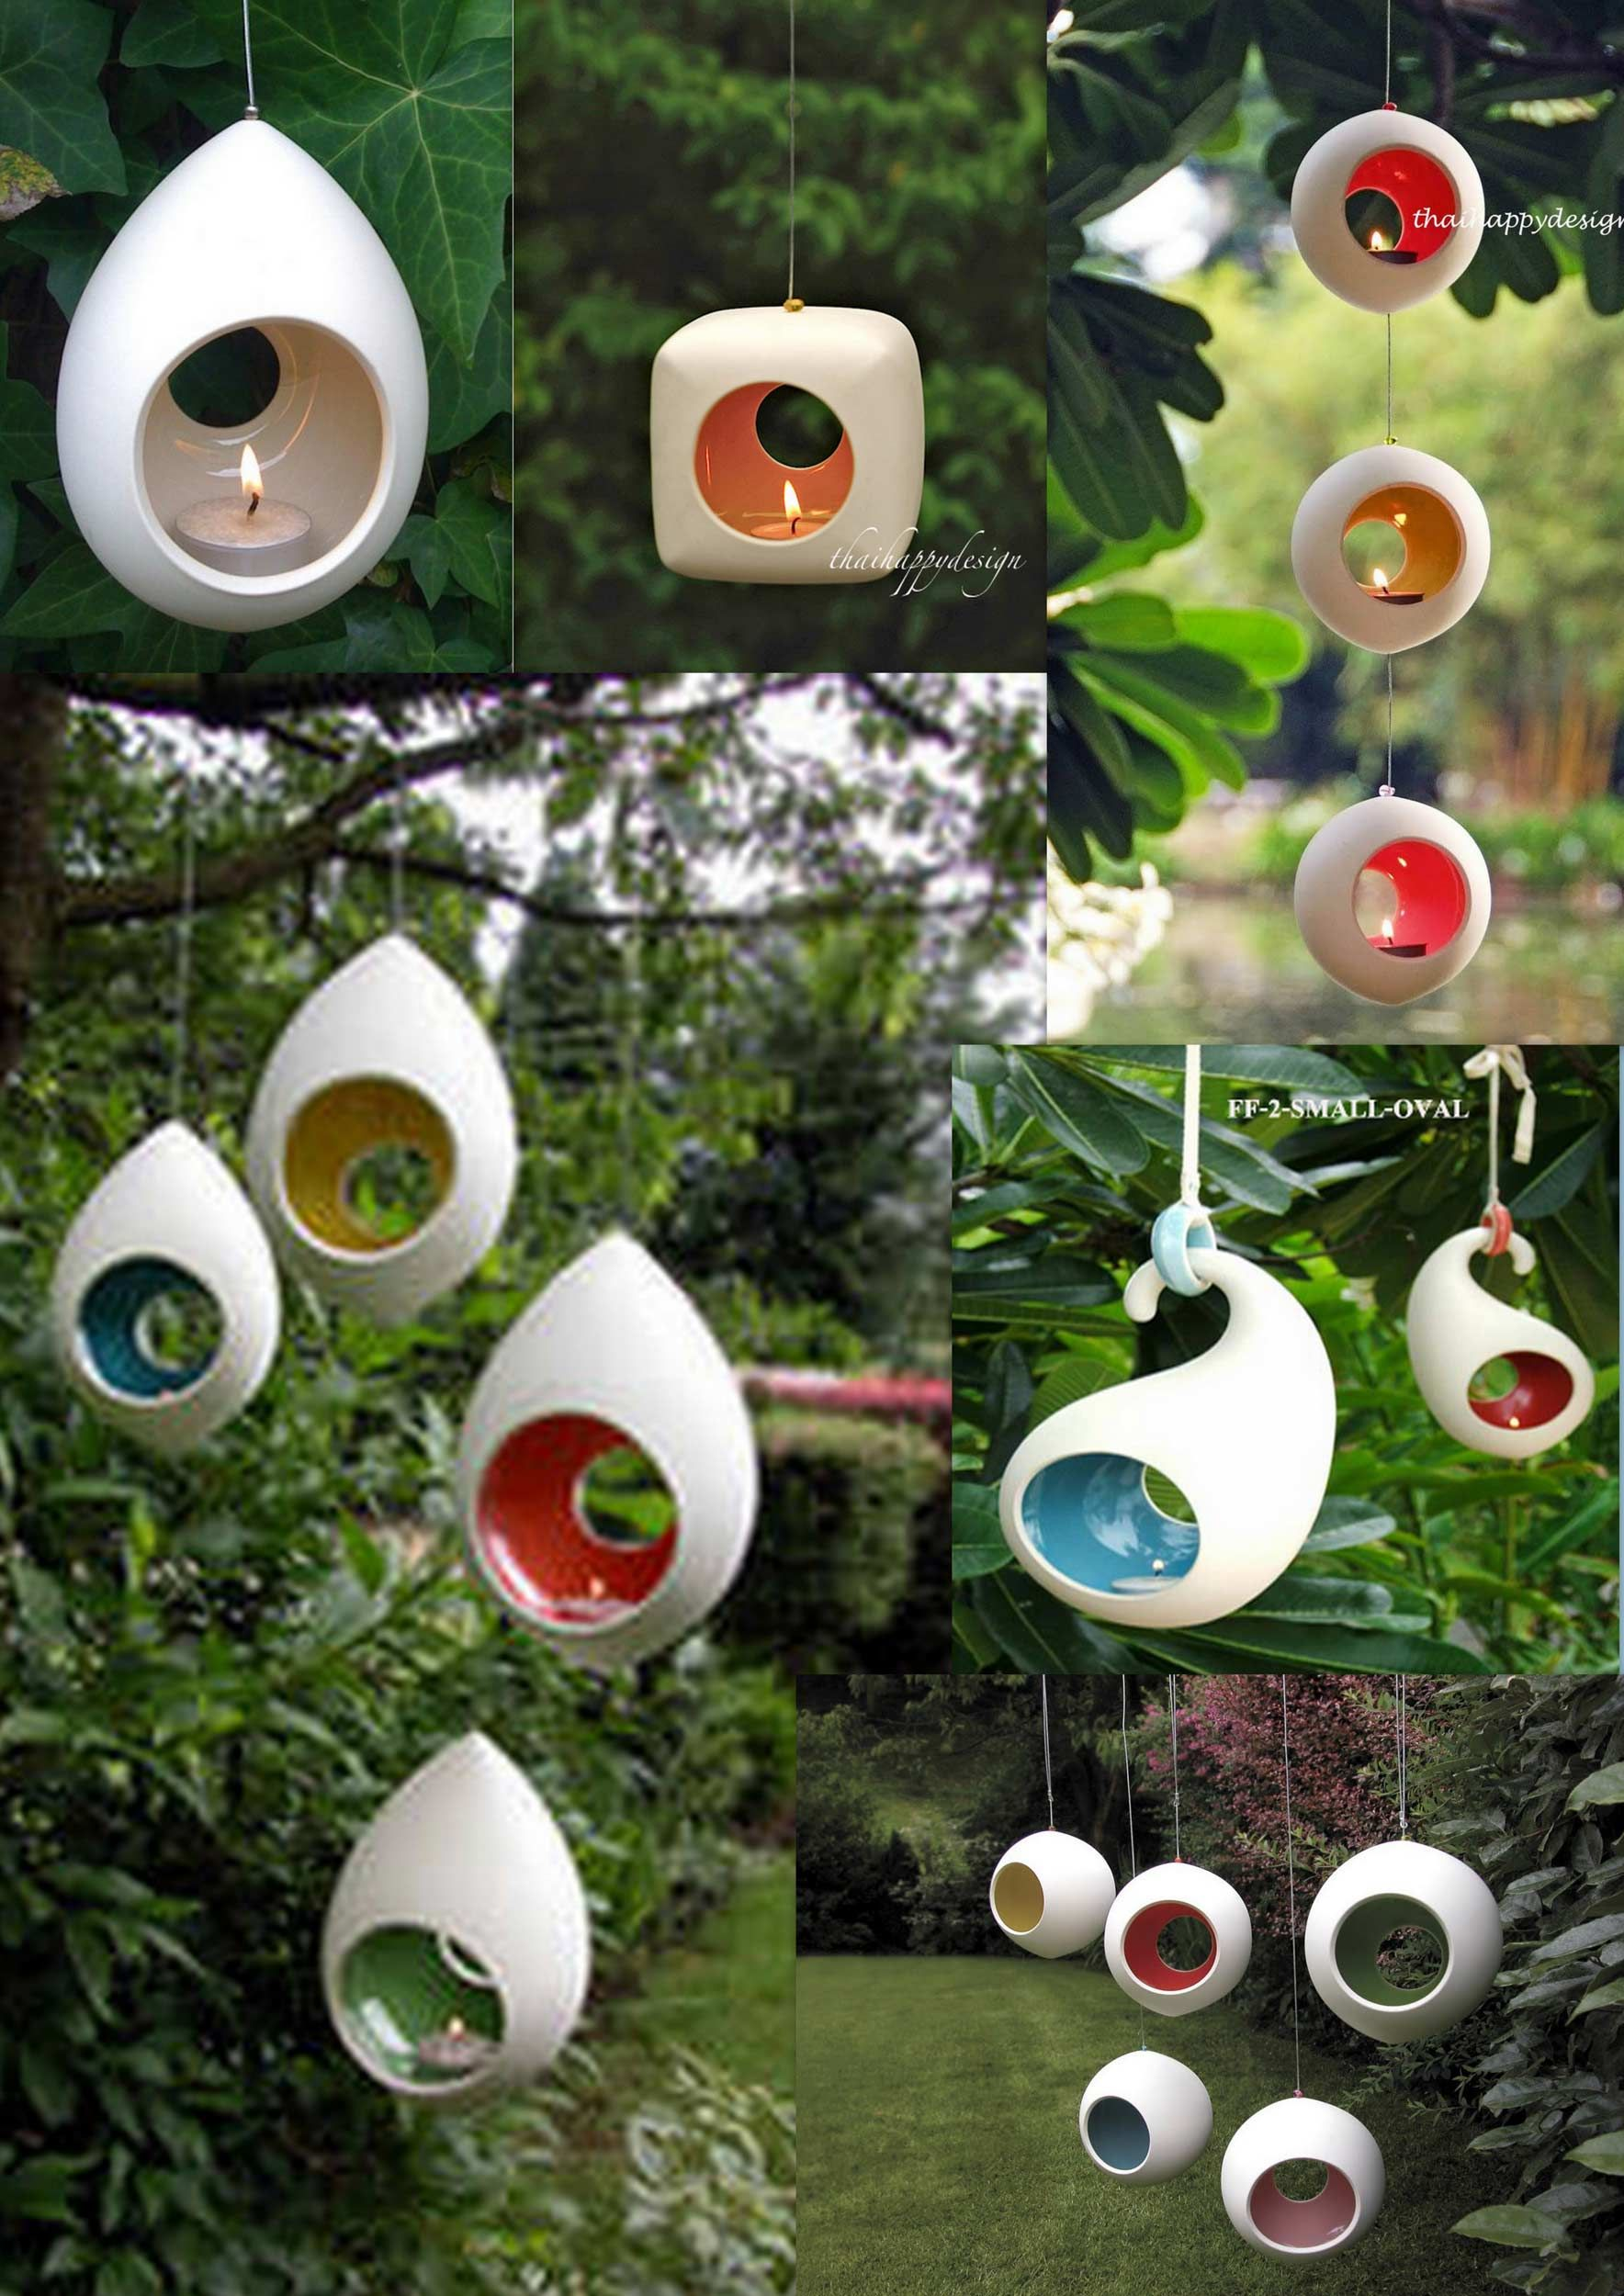 Hanging Outdoor Candle Holders Ikou Hanging Pod Ceramic Hanging Pod Hanging Candle Holder Onef Outdoor Hanging Candles Hanging Candle Holder Pottery Candle